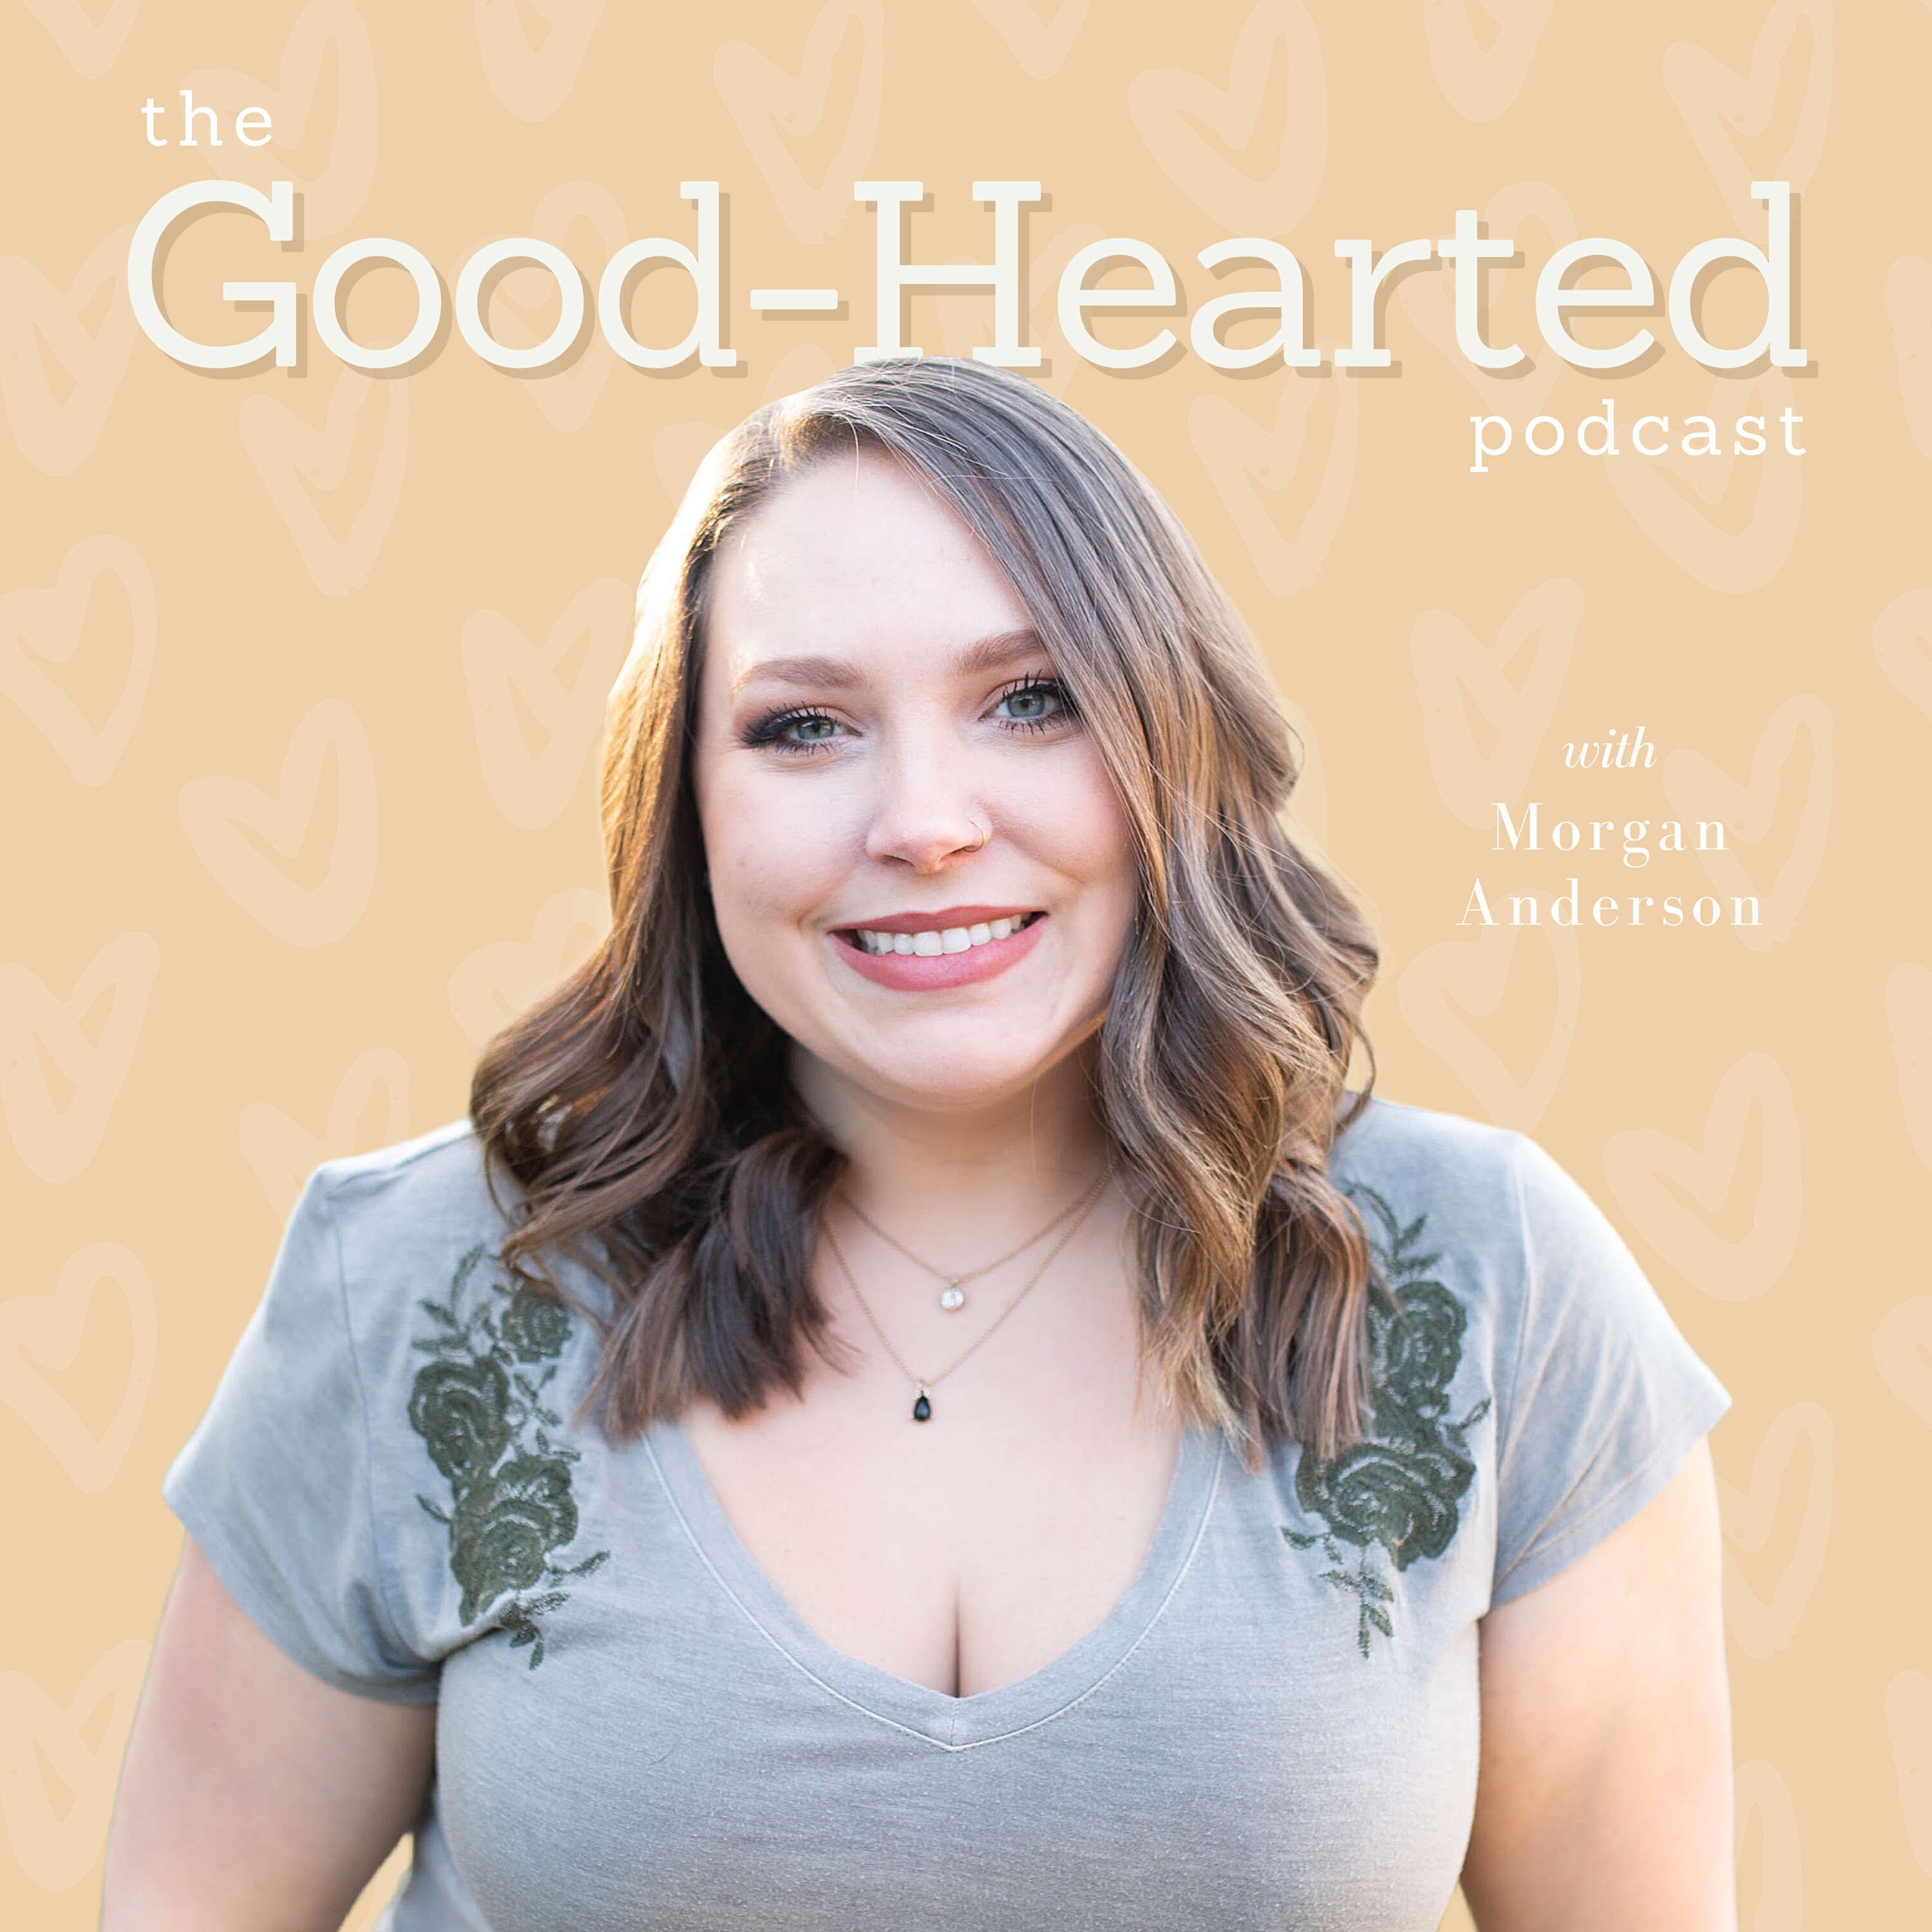 The Good-Hearted Podcast